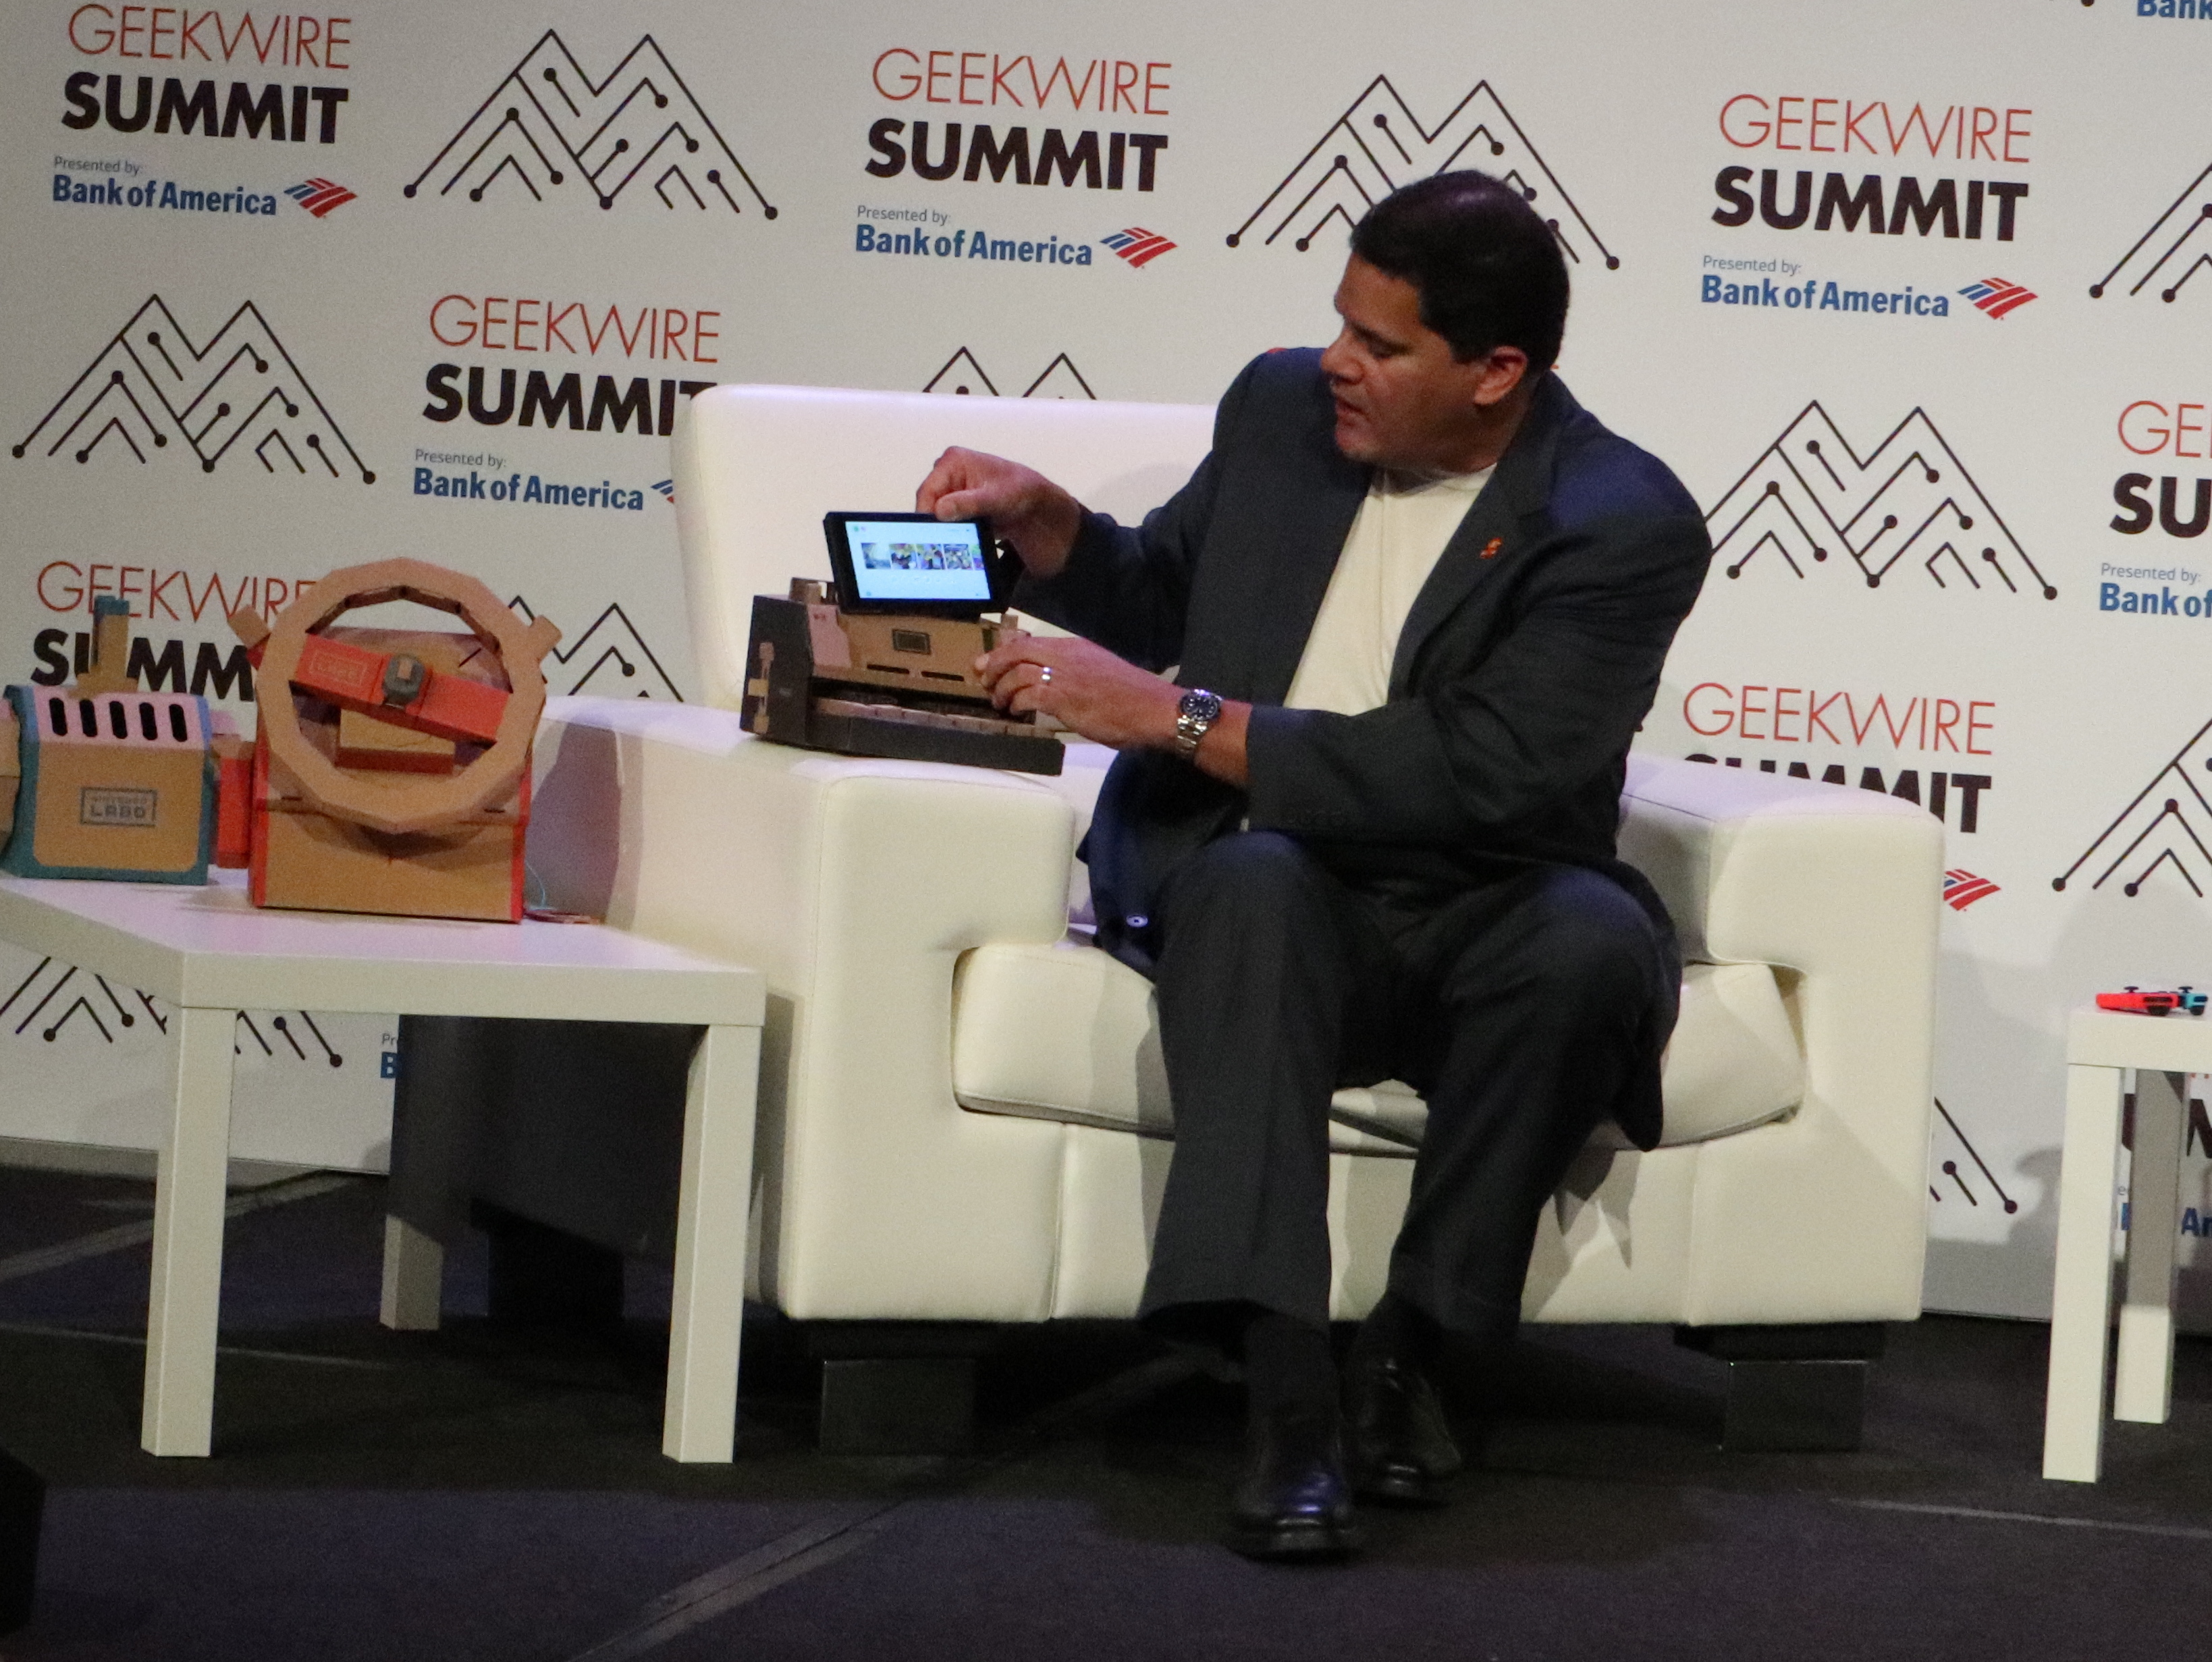 Nintendo of America President and COO Reggie Fils-Aime demonstrates how Switch hardware fits into Nintendo Labo's cardboard playsets. He didn't take the opportunity to reveal any specific sales data about the add-on series.